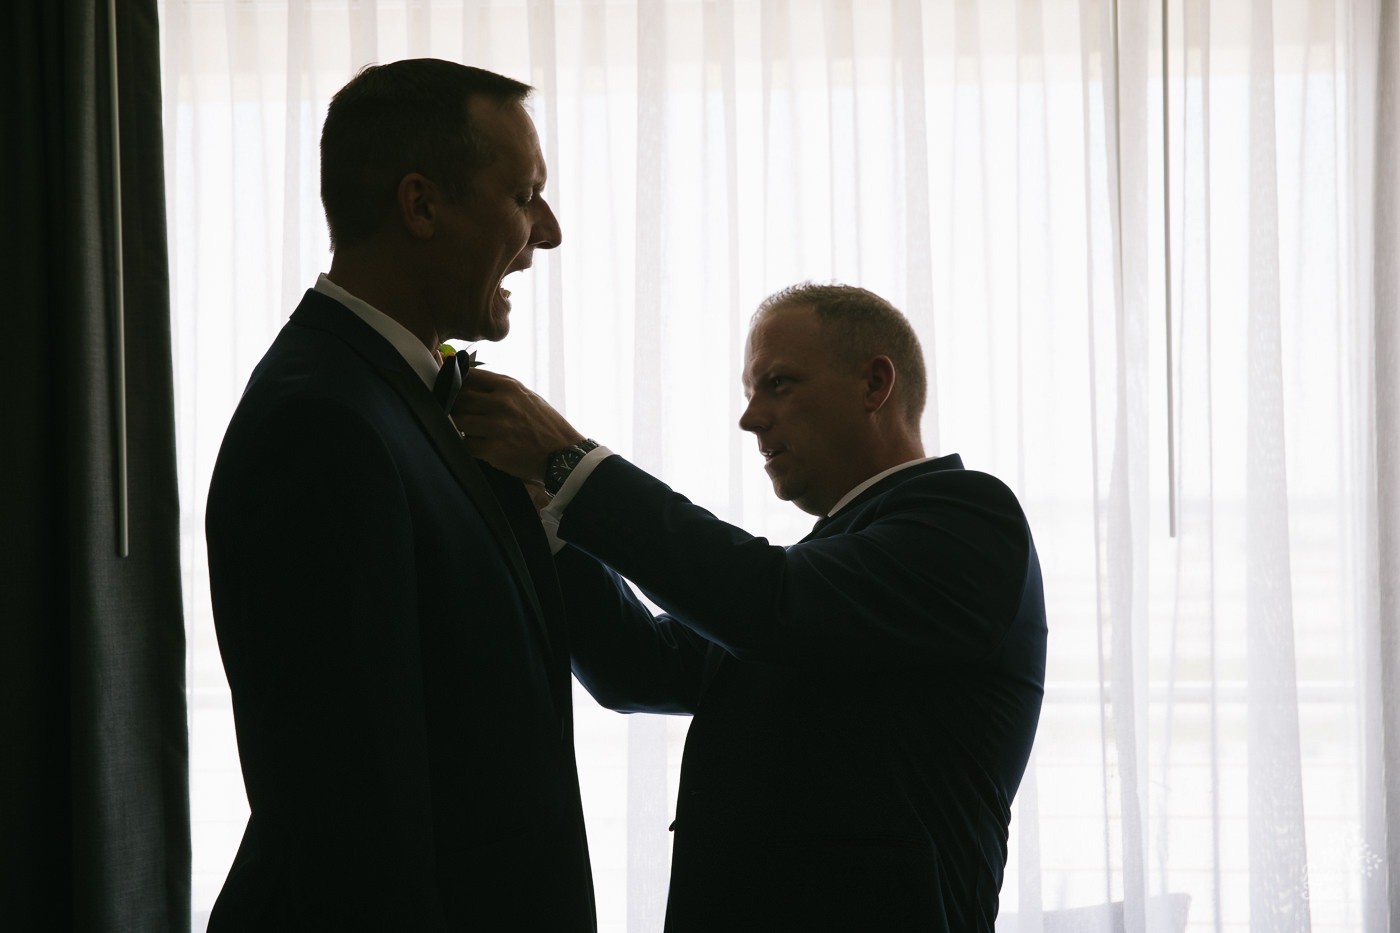 One groom pinning a boutonierre on his love's lapel and accidentally poking him.